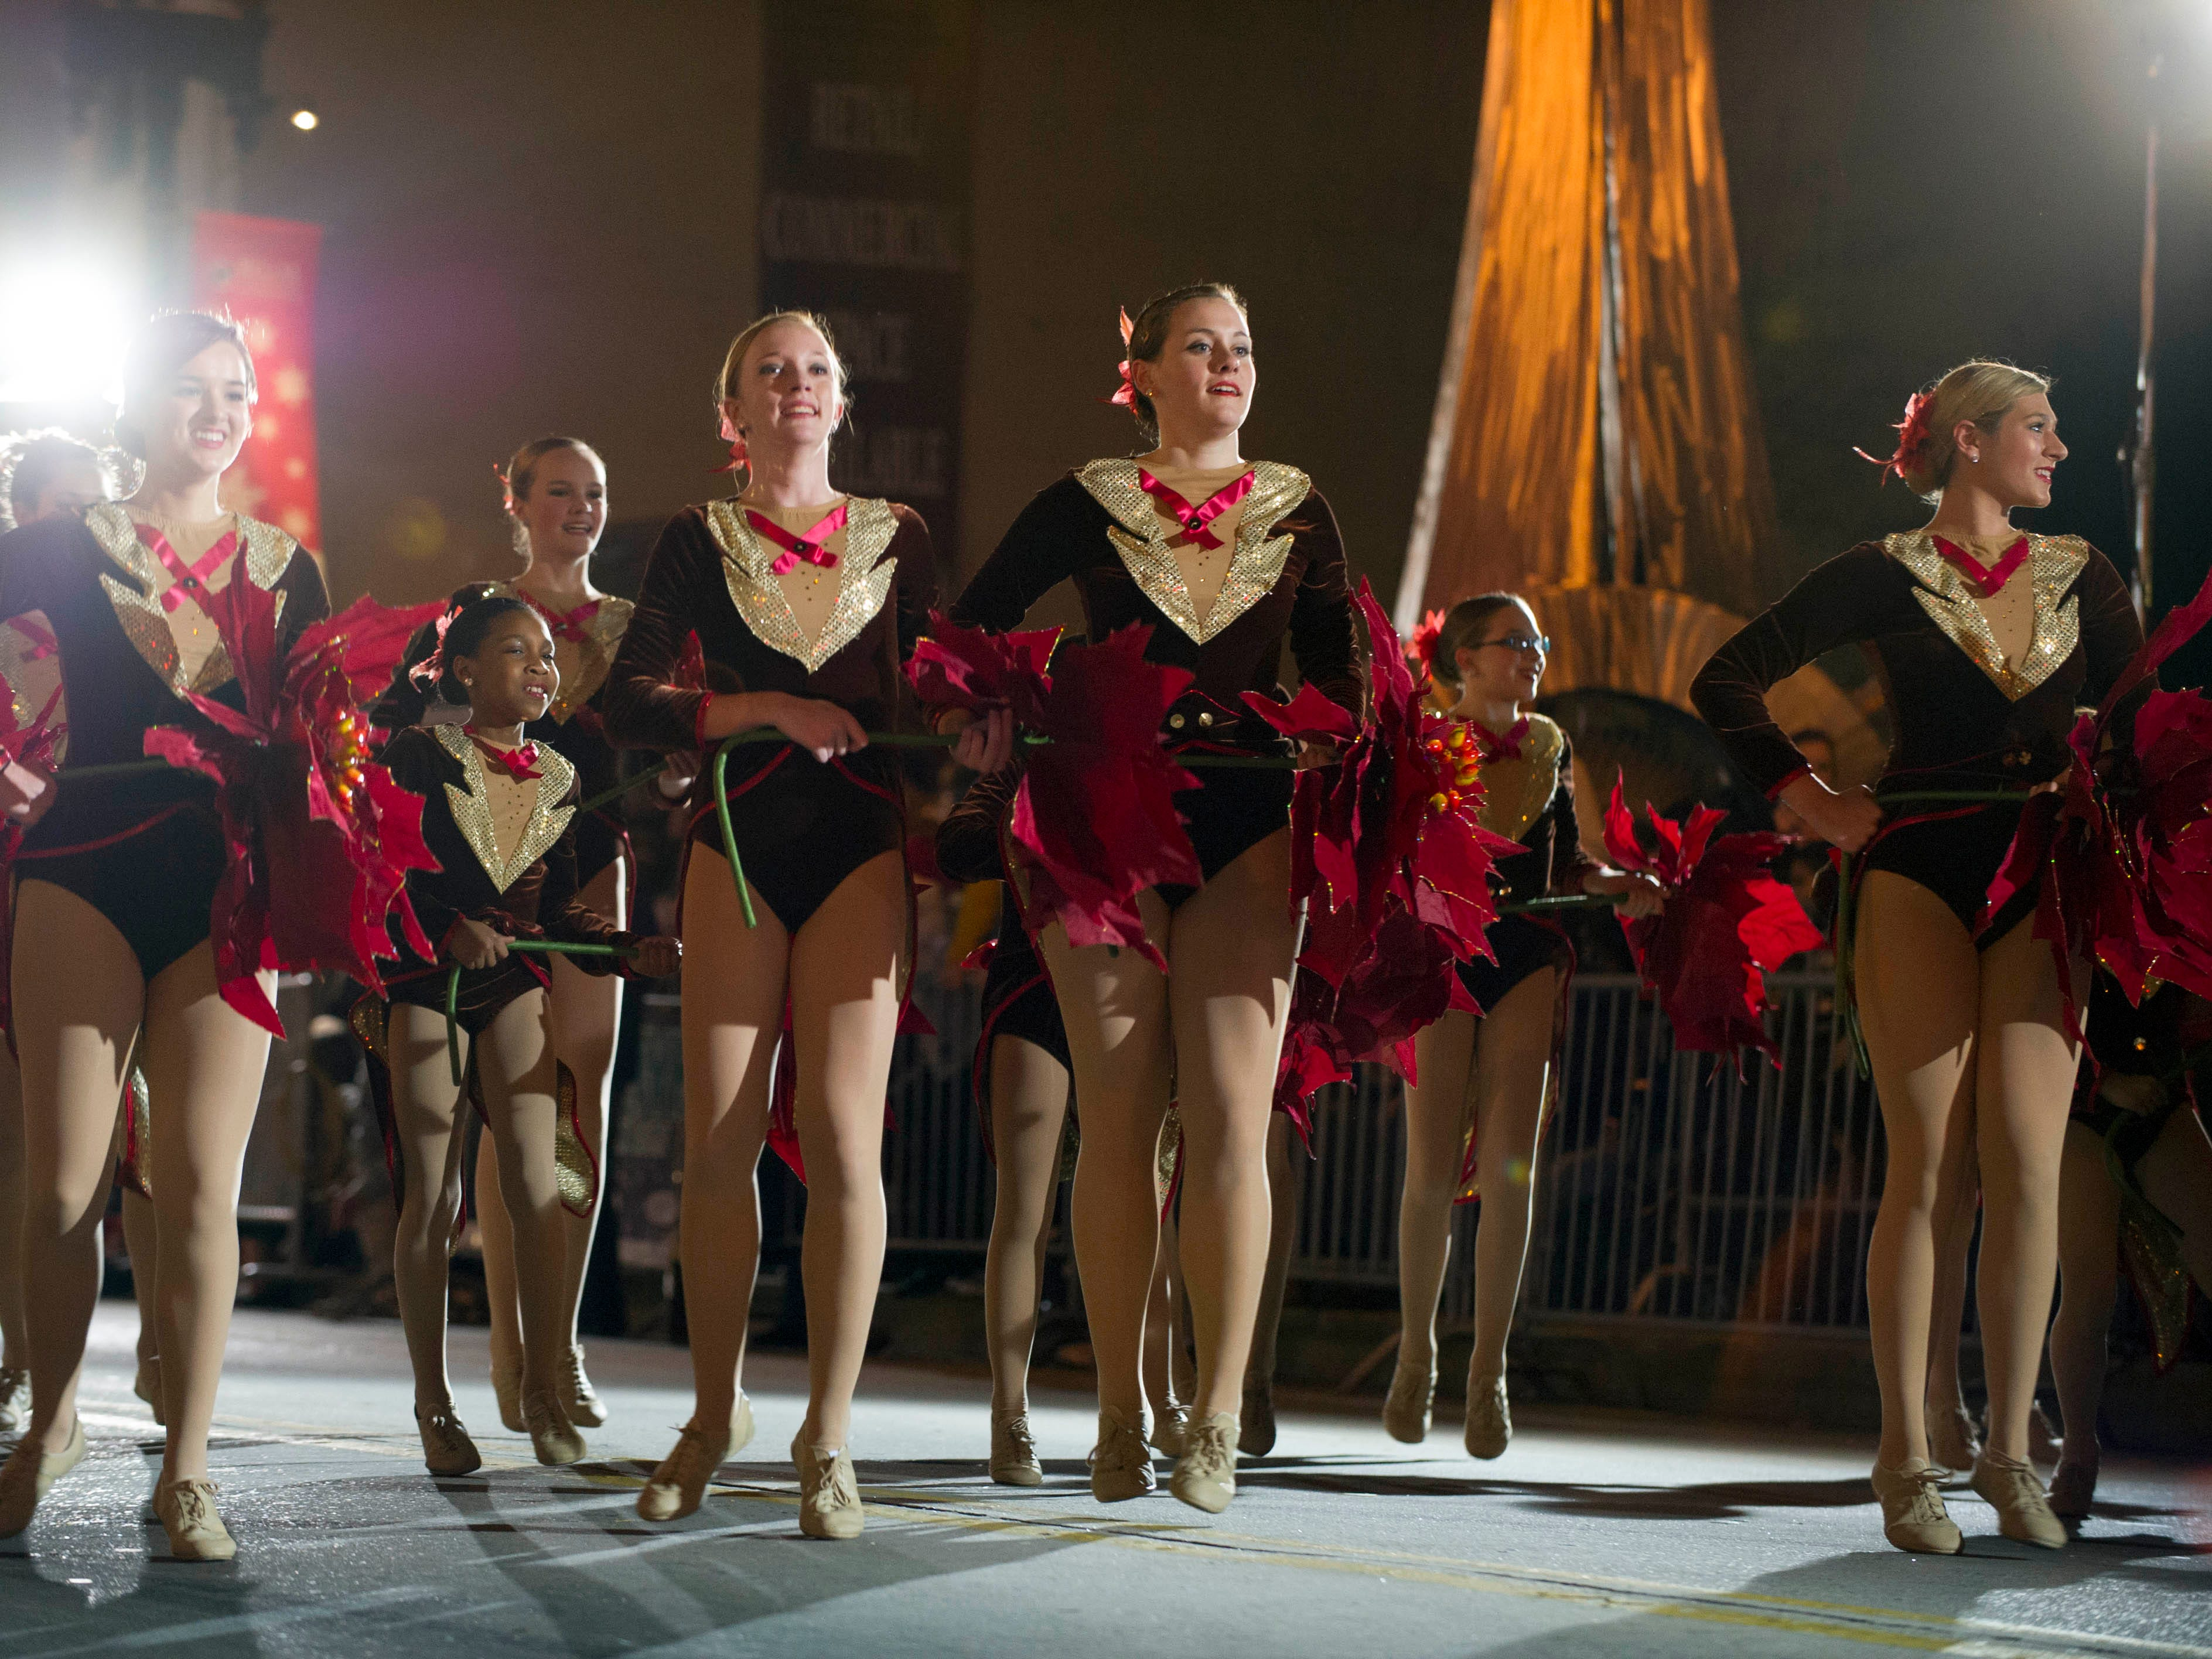 Members of the Angela Floyd School for Dance perform during the Christmas parade on Gay Street downtown Friday, Dec. 7, 2012.